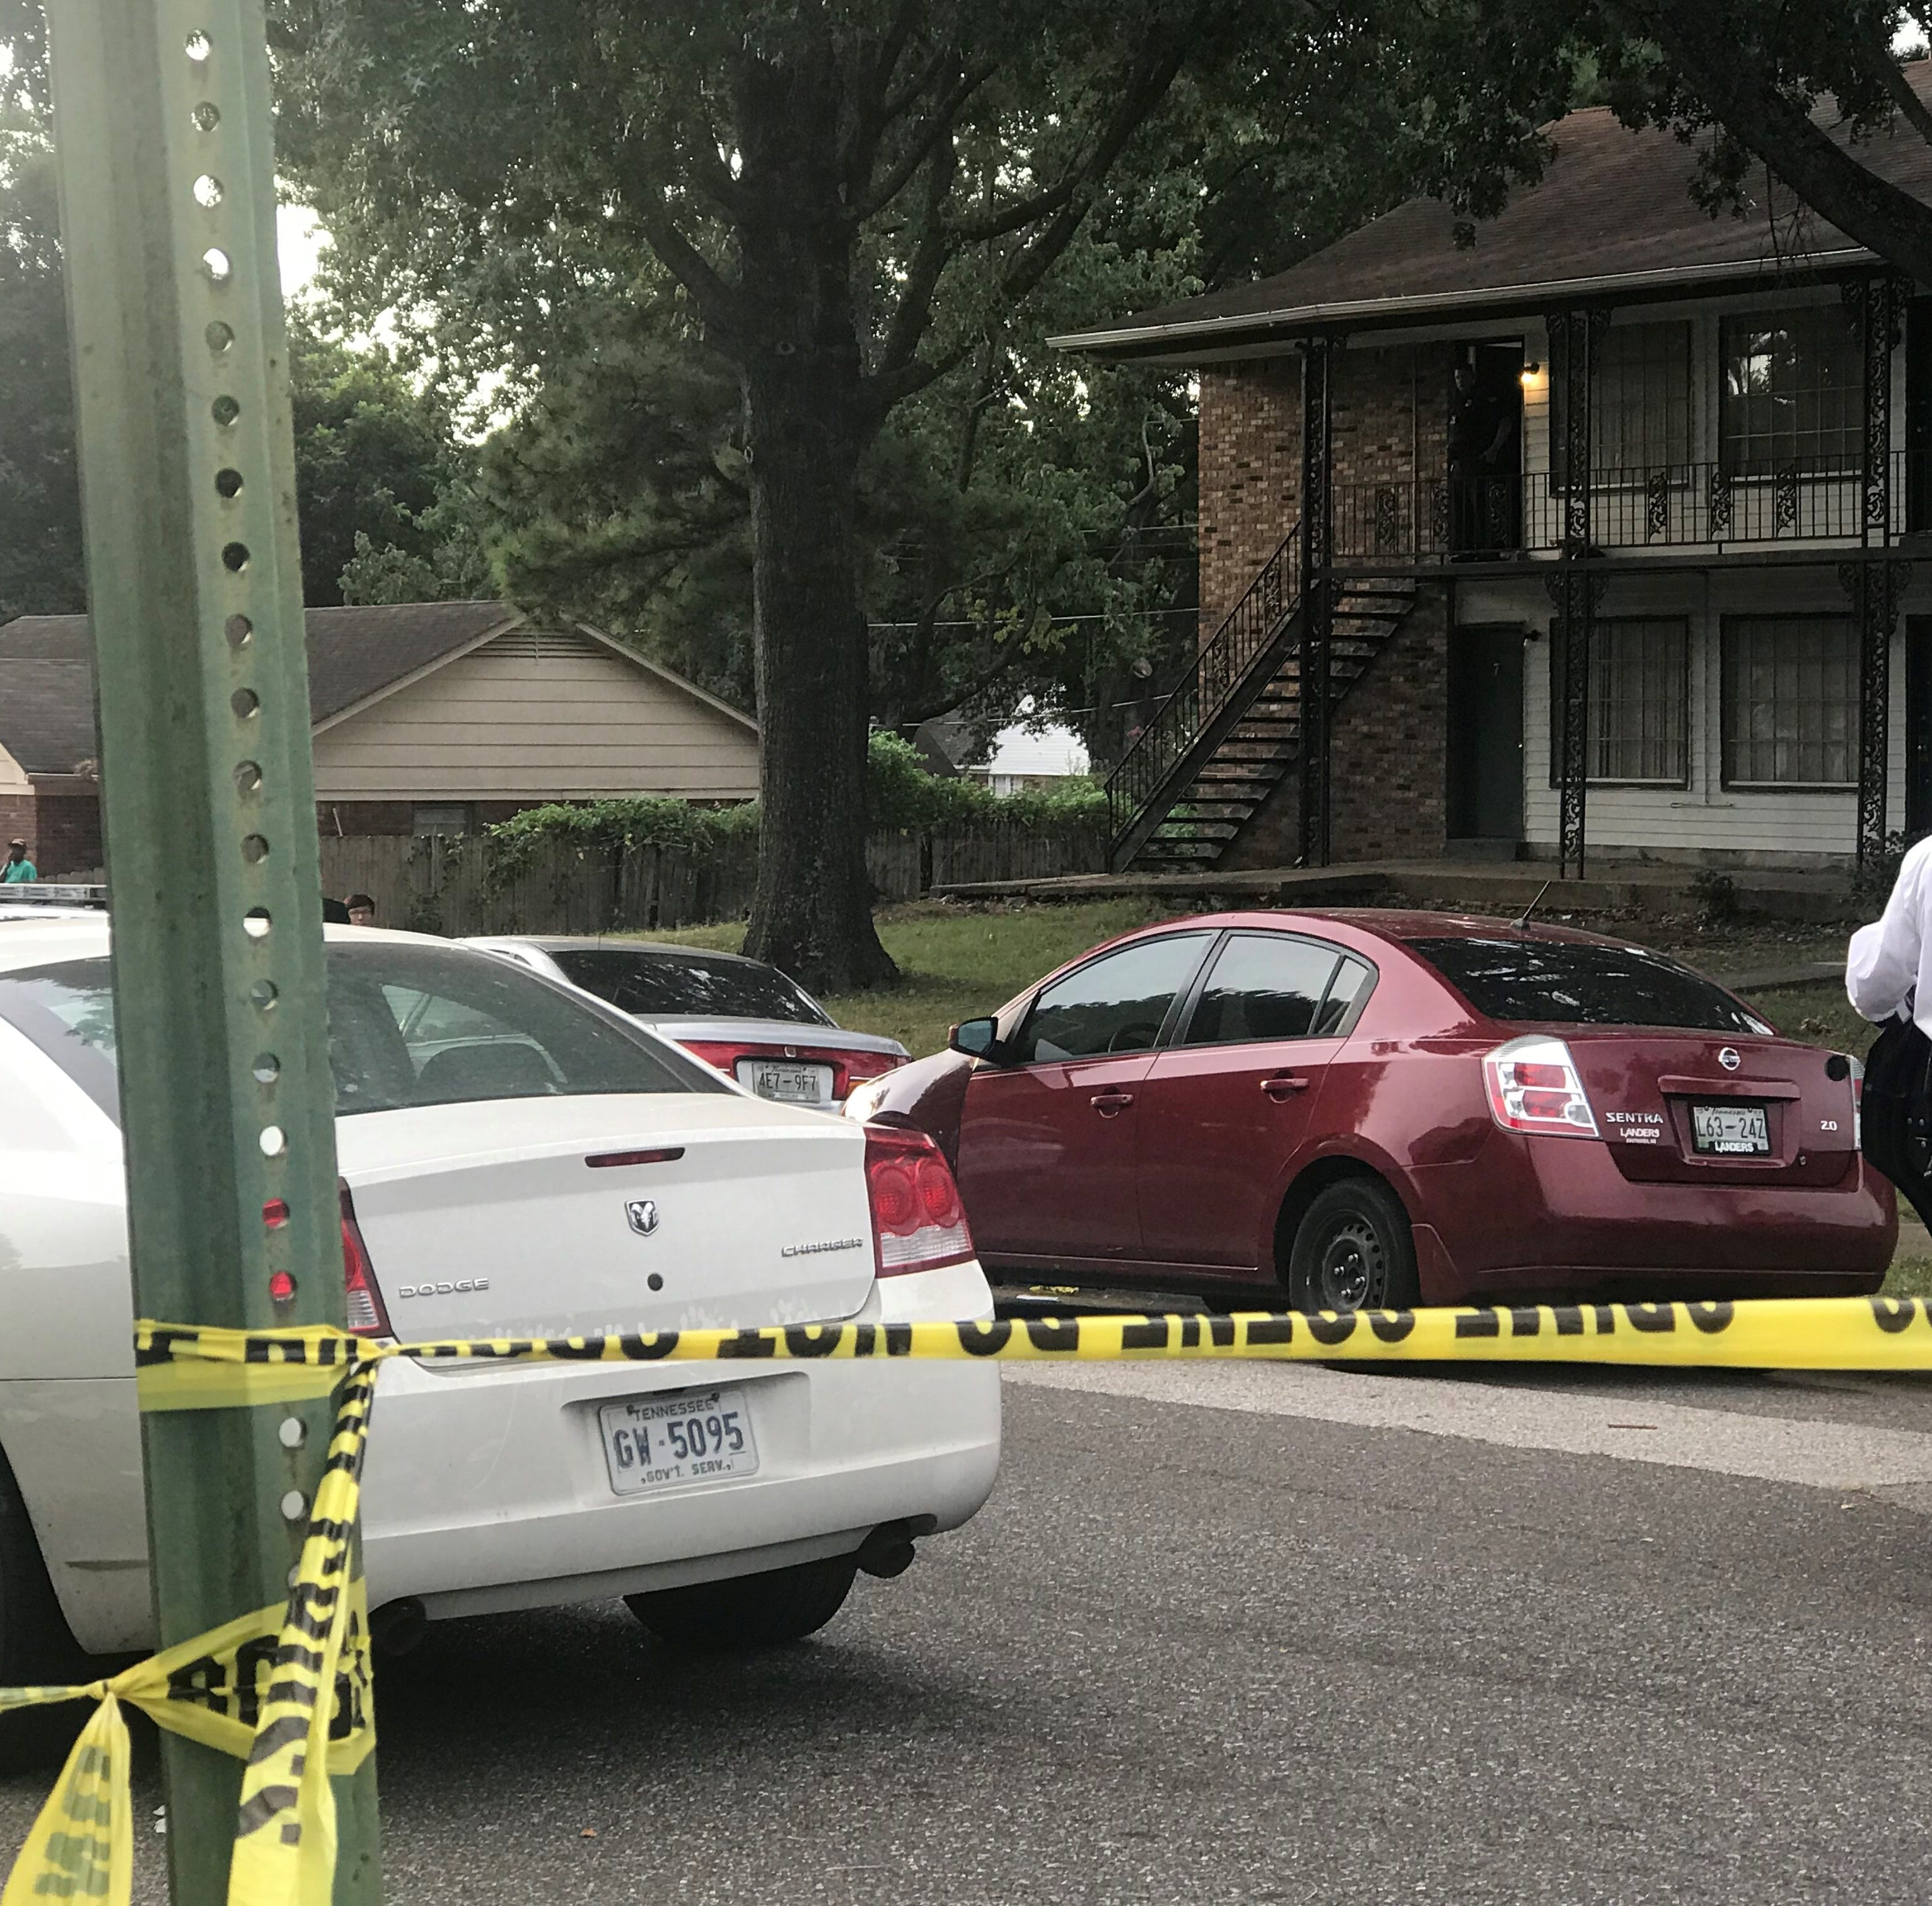 String of shootings kill 6 over 72-hour period in Memphis